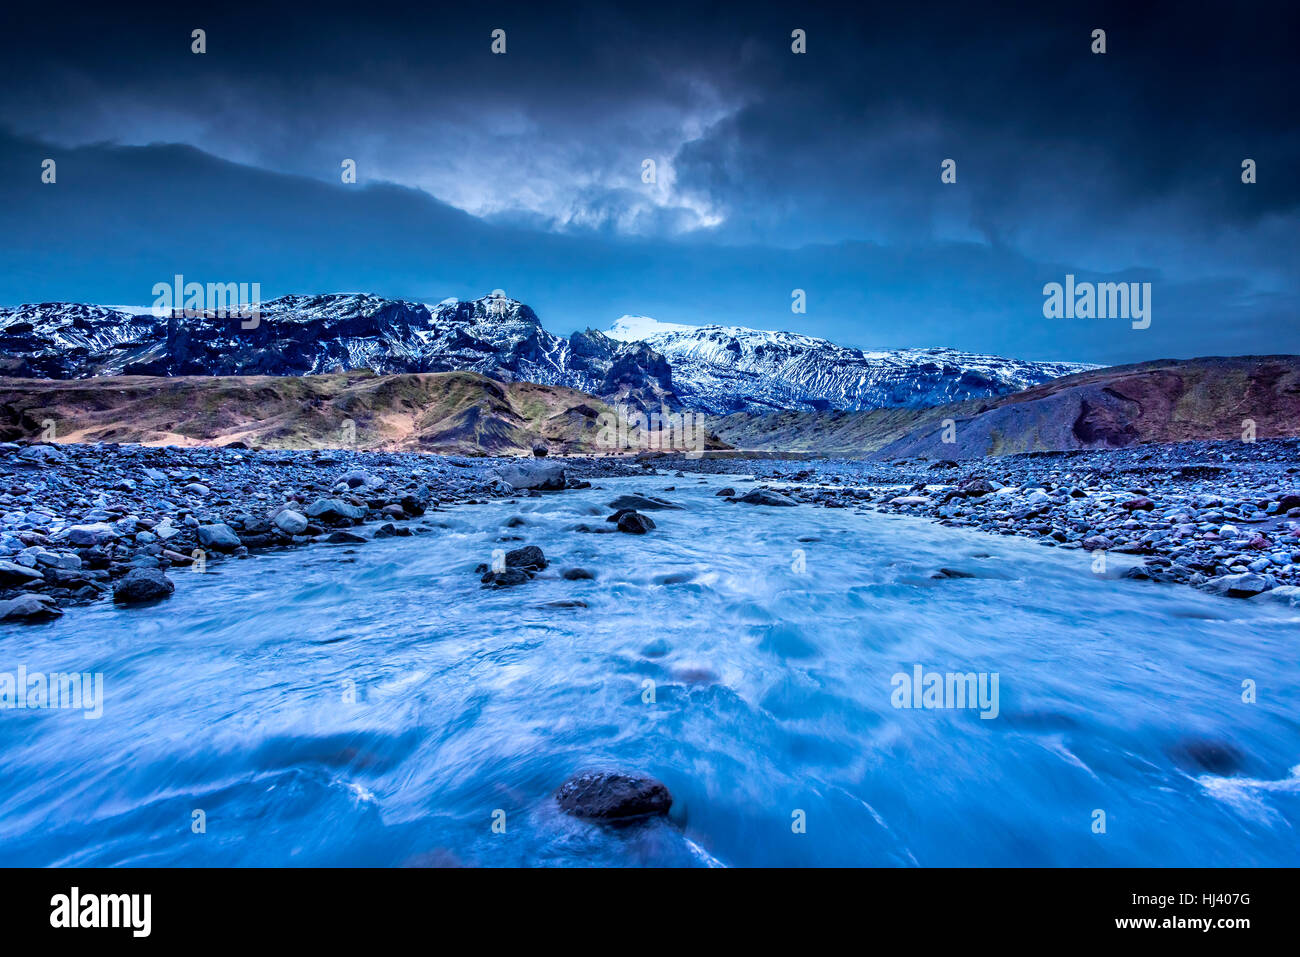 A river formed by melting glaciers flows through a mountain range in northern Iceland during a dark, rainy day. - Stock Image